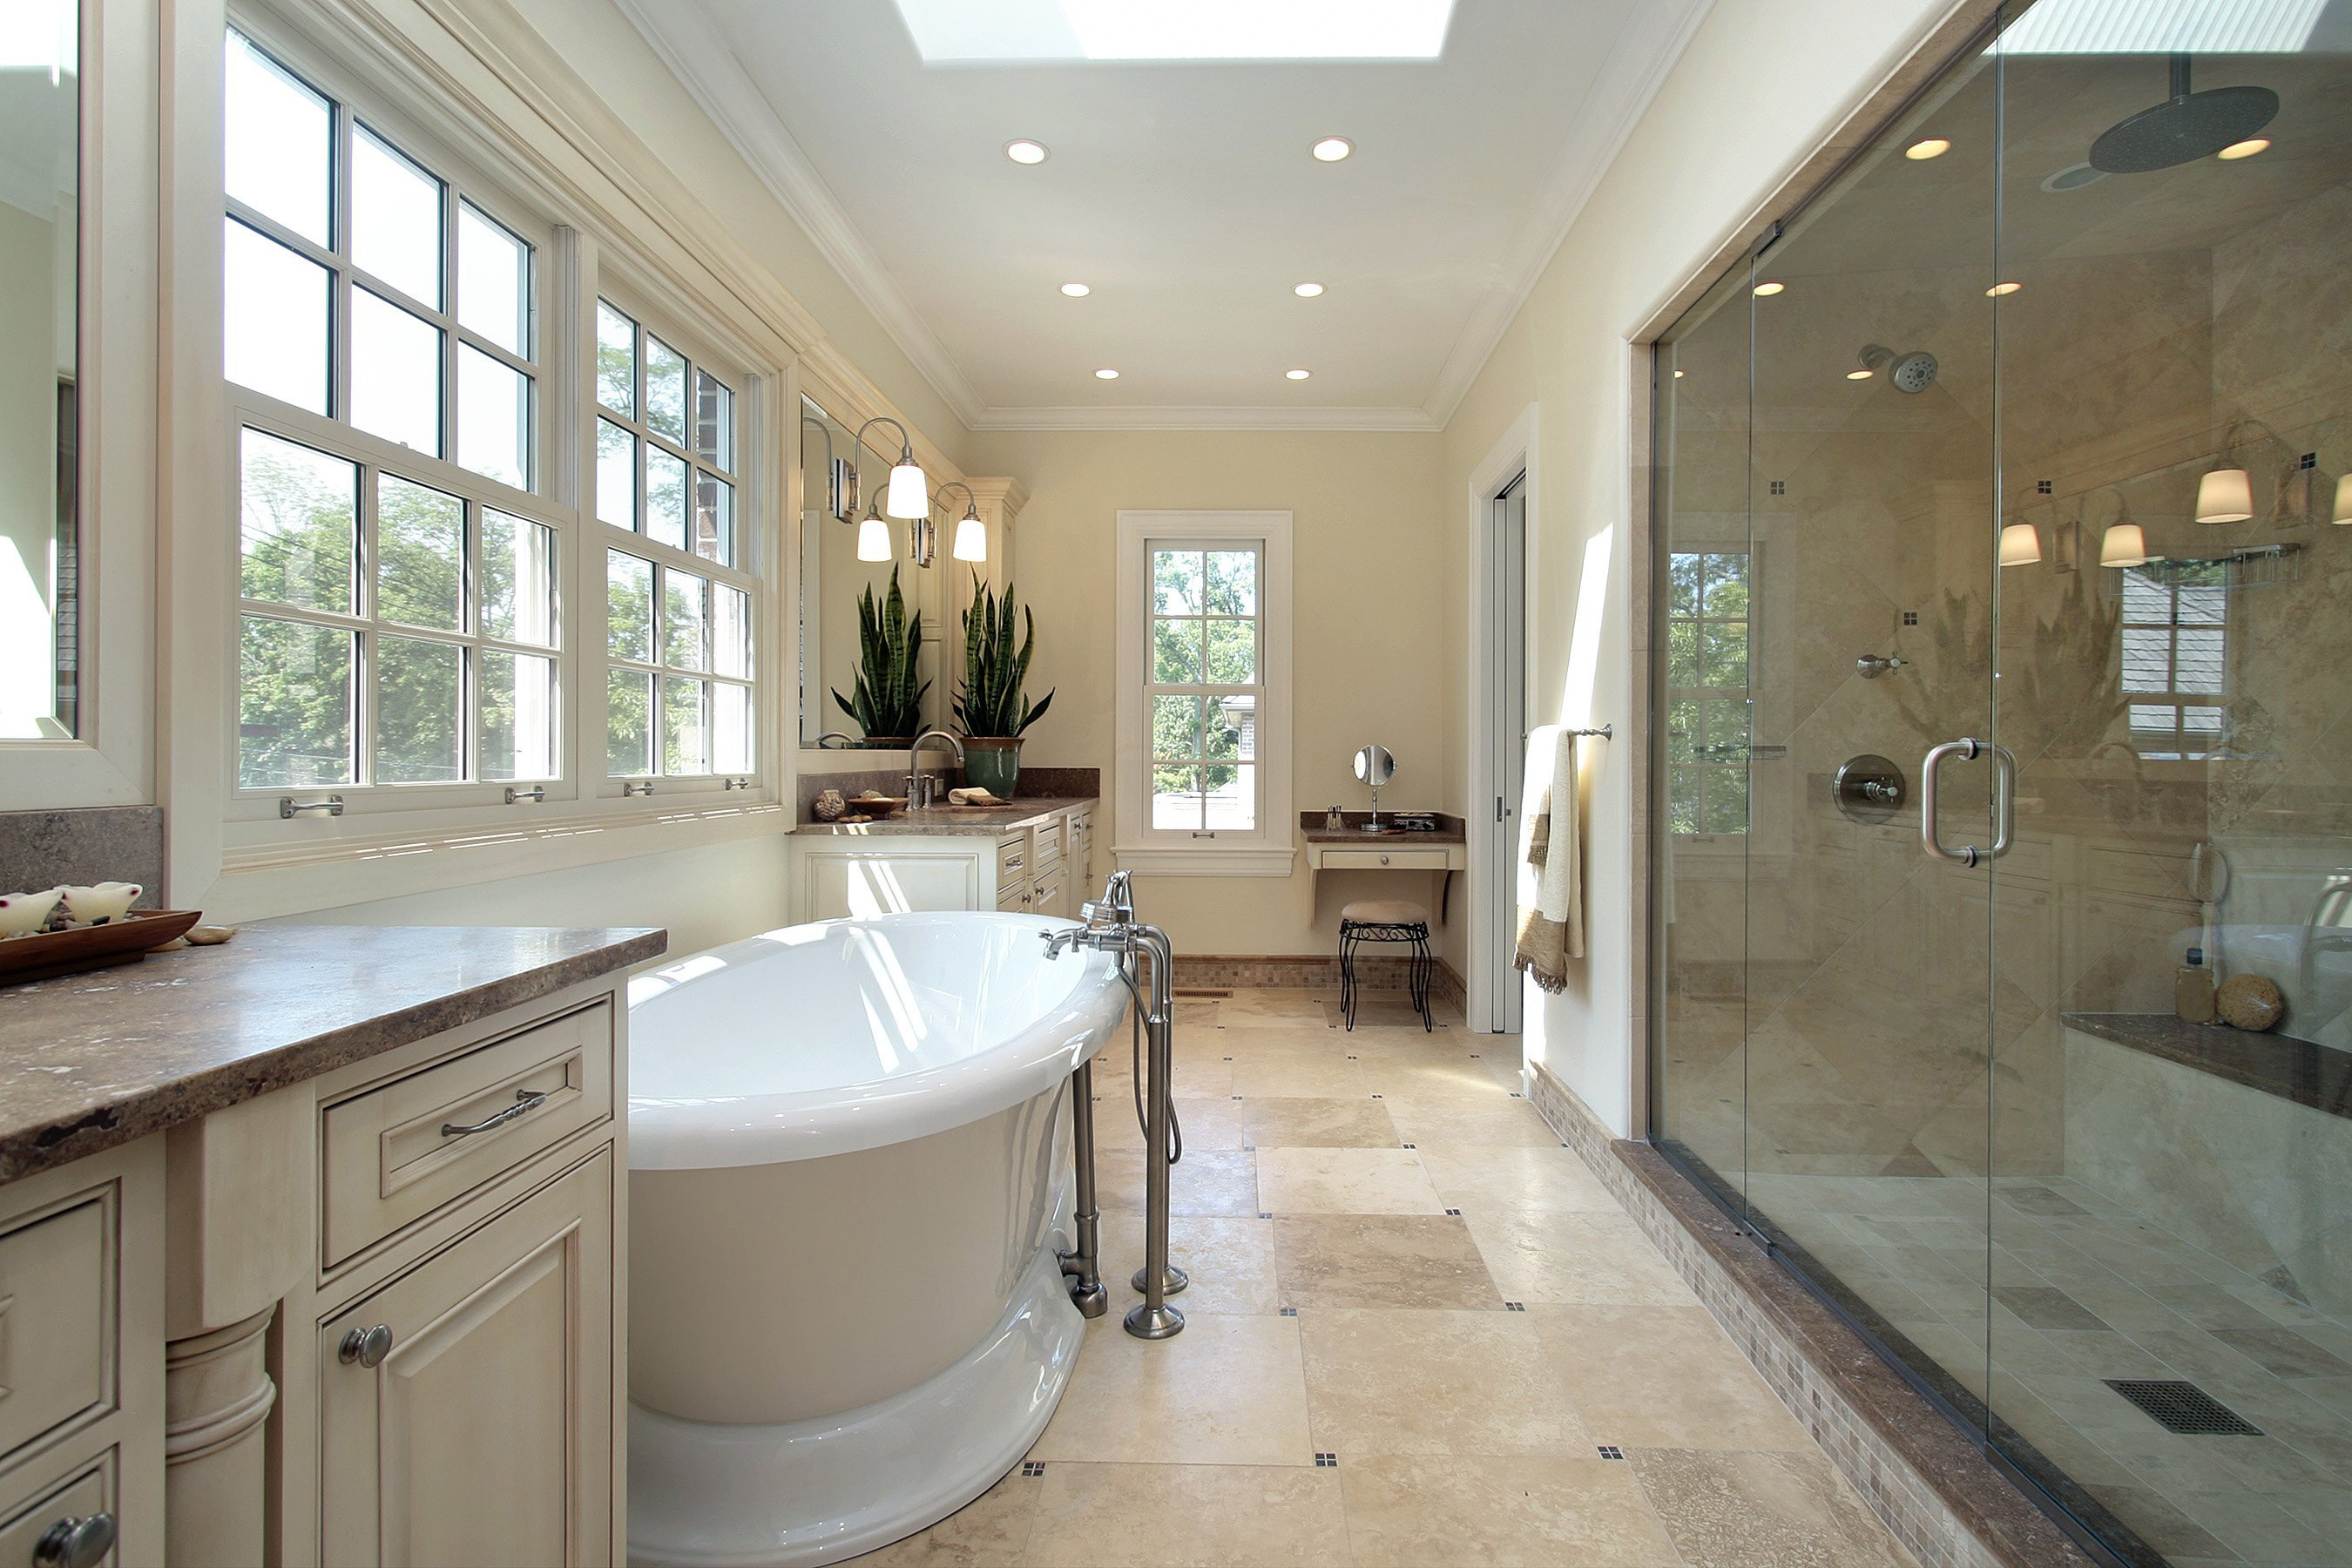 Chicago Bathroom Remodeling Contractor. Chicago General Contracting and Construction Services